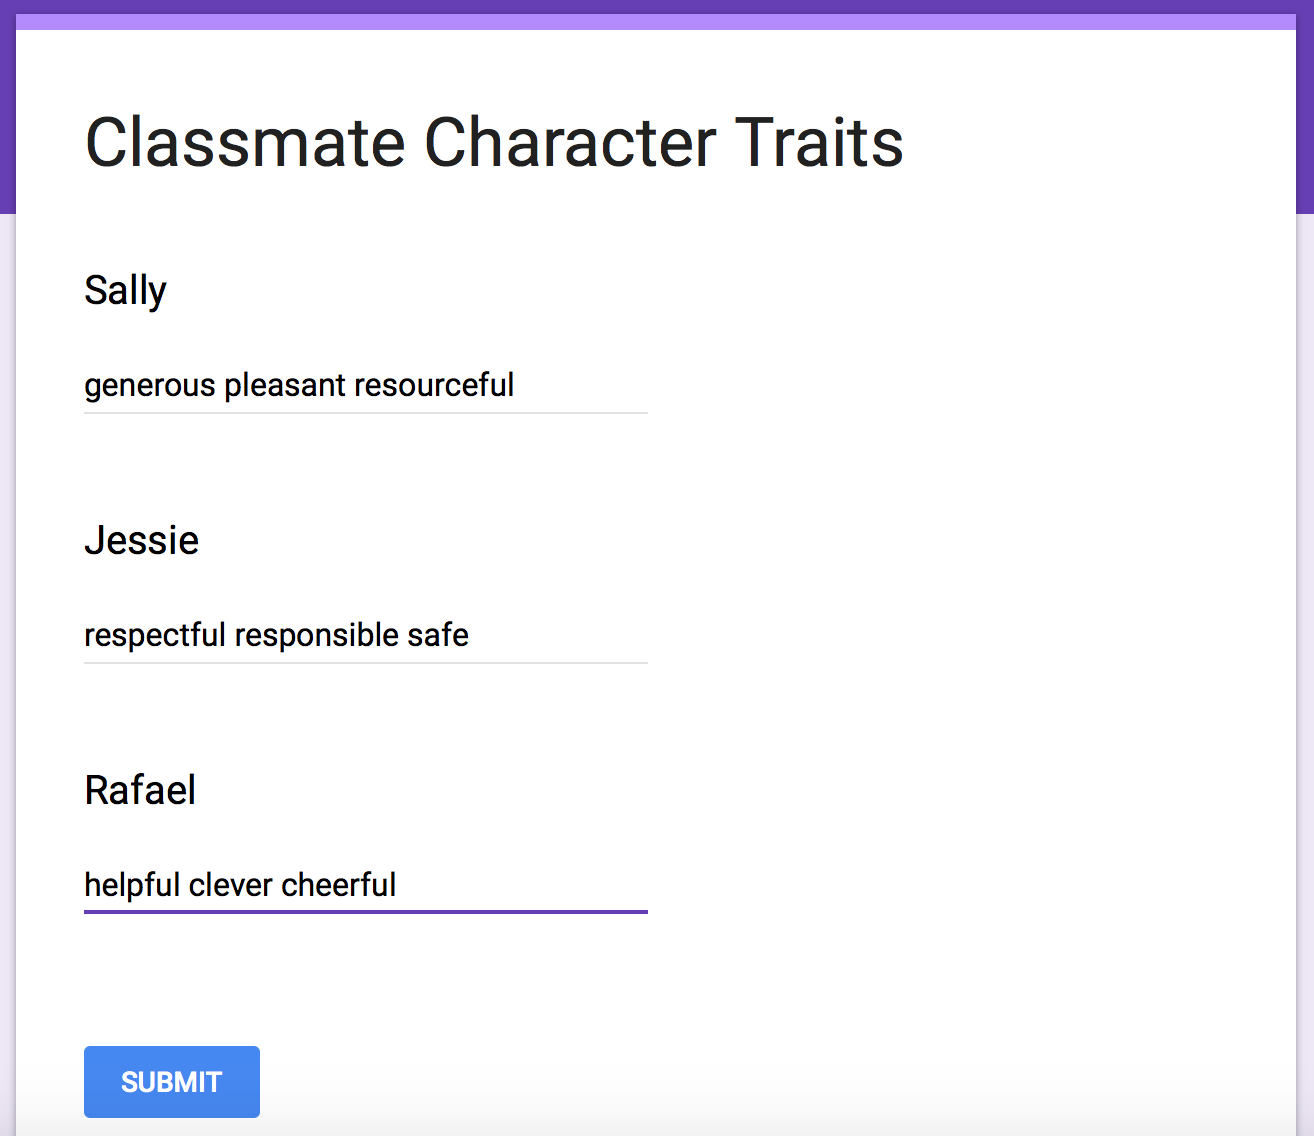 create a word cloud for the students to think about their classmates character traits using a